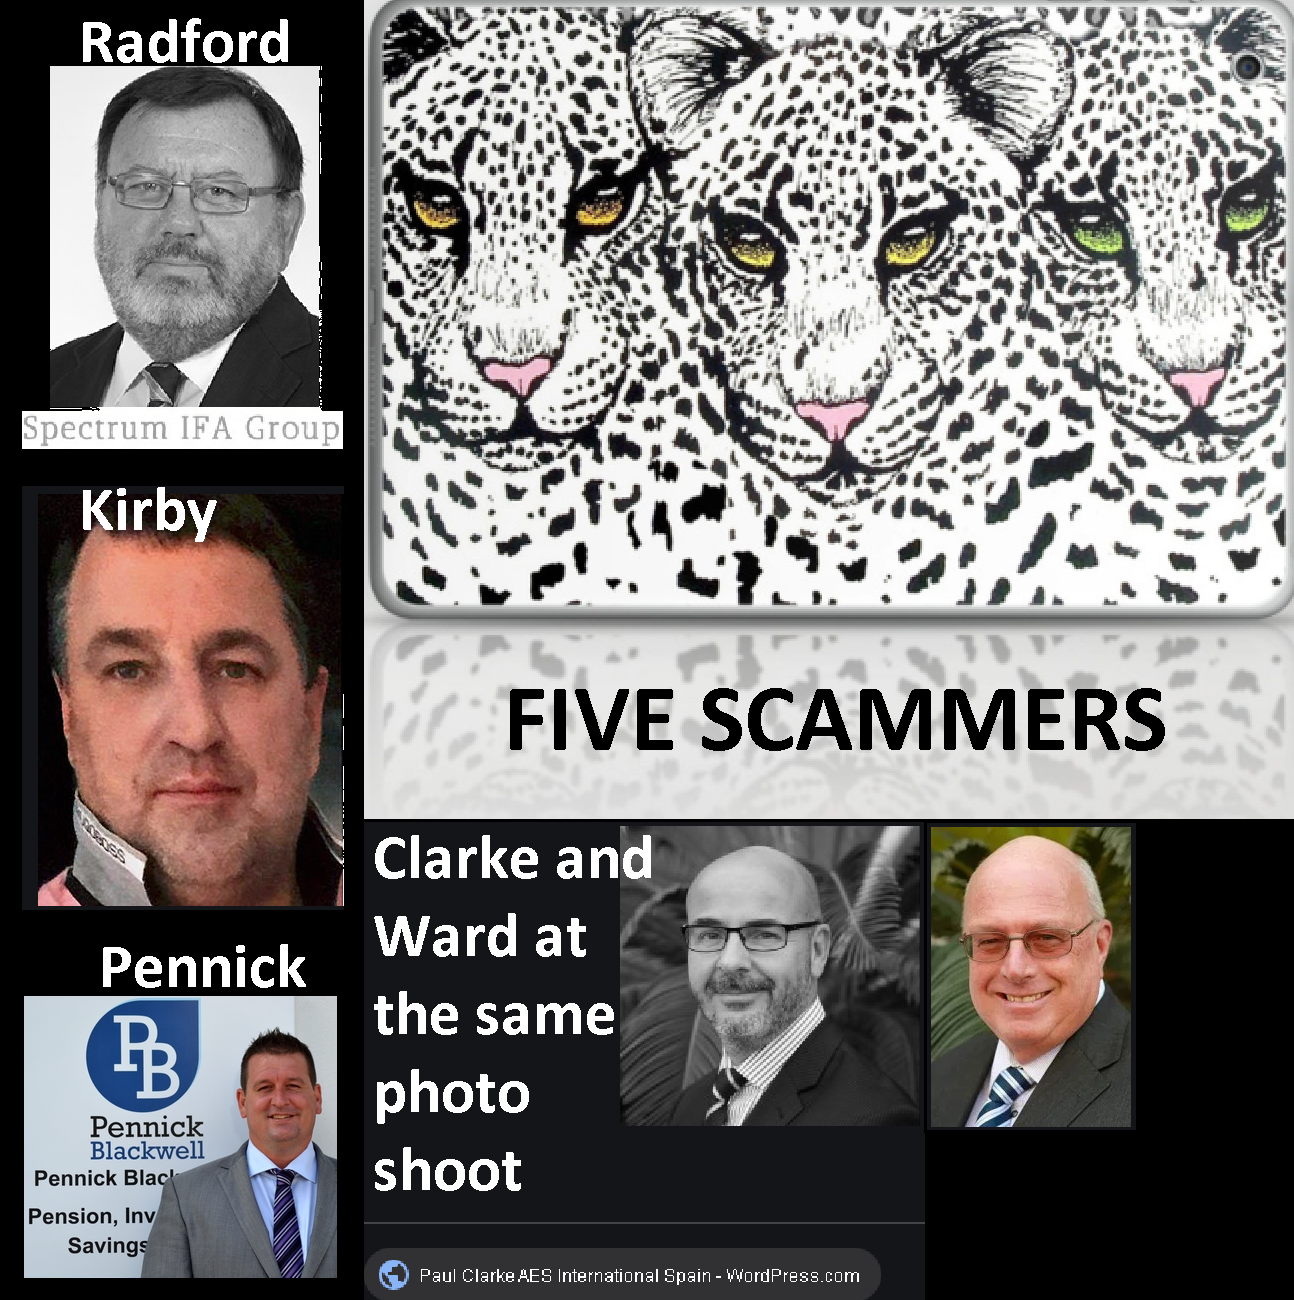 Leopards and Scammers 1